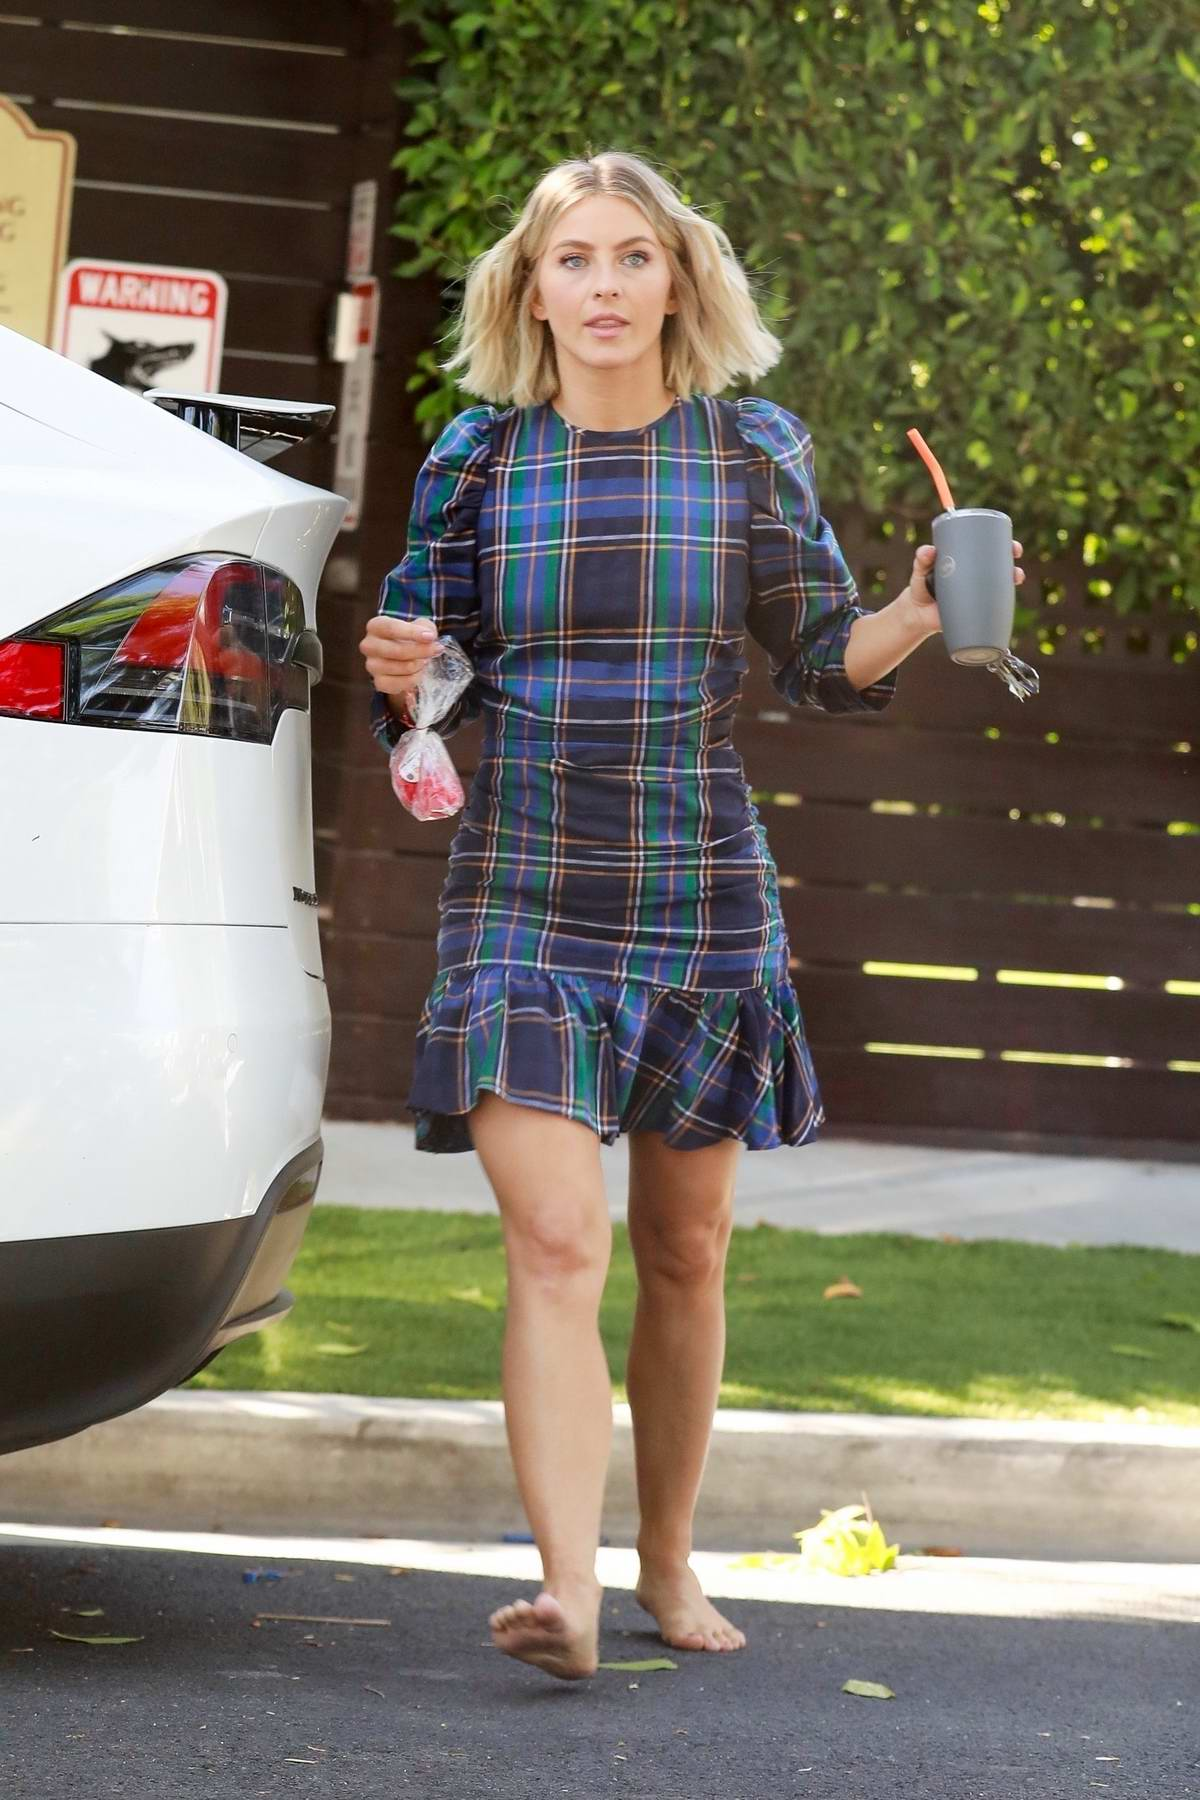 Julianne Hough looks lovely in a plaid dress as she leaves a friend's house in West Hollywood, Los Angeles